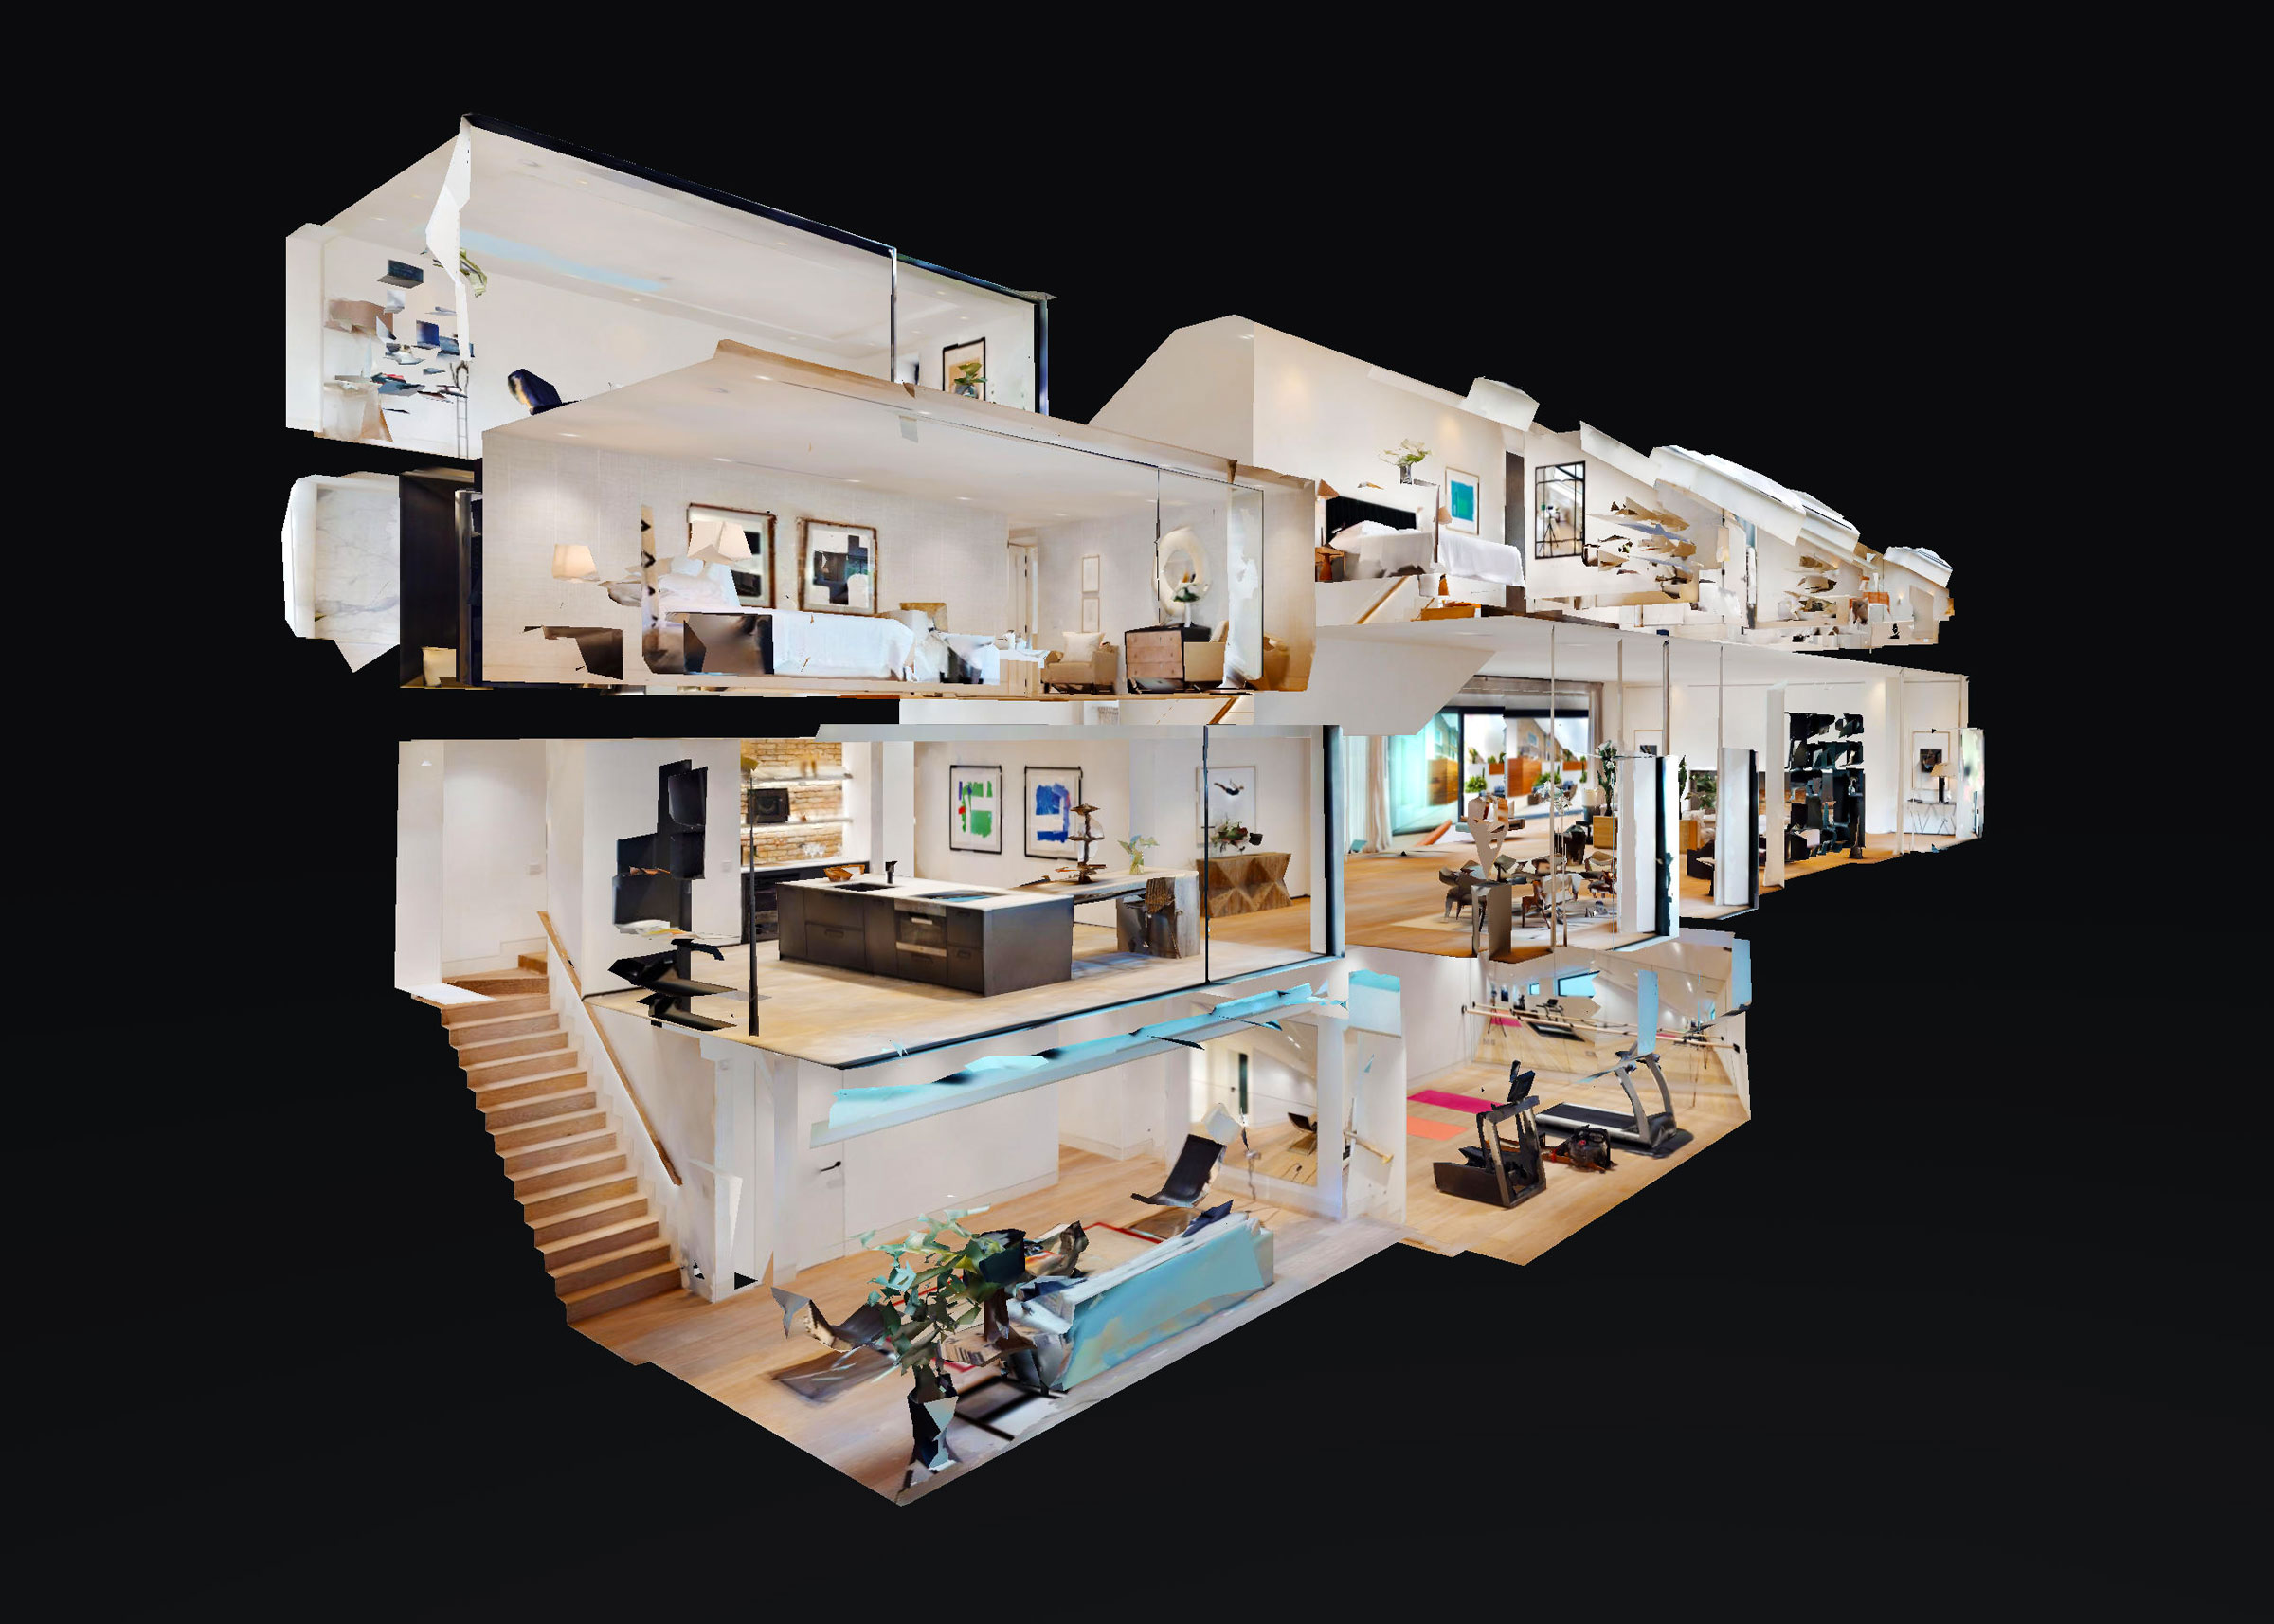 Comprehensive dollhouse view of the 3D digital twin experience